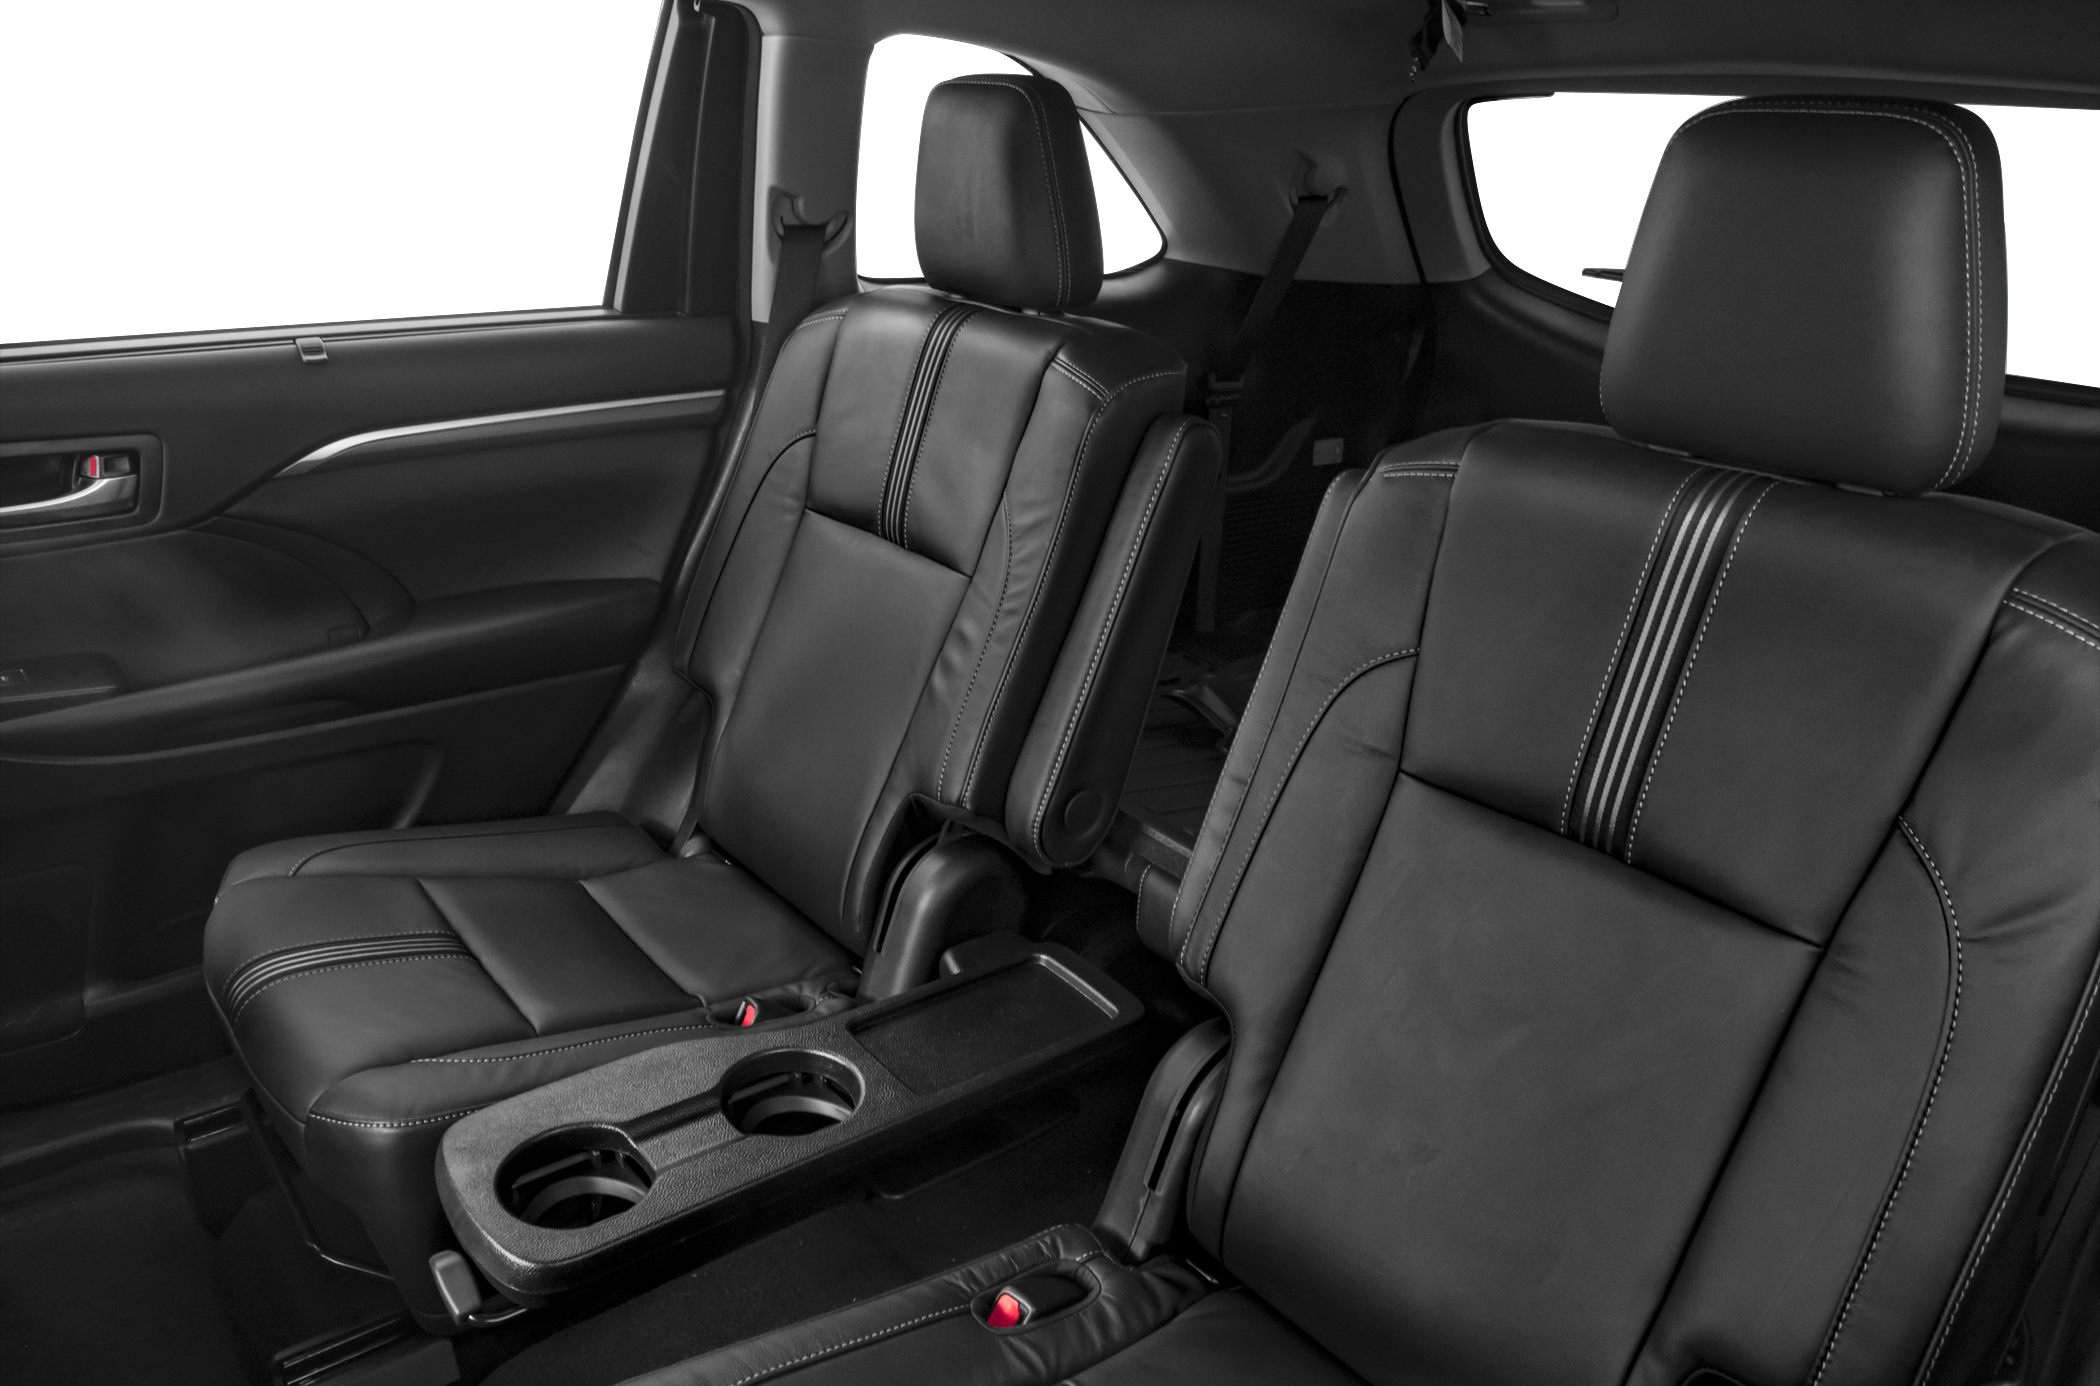 2018 Toyota Highlander Styles Amp Features Highlights